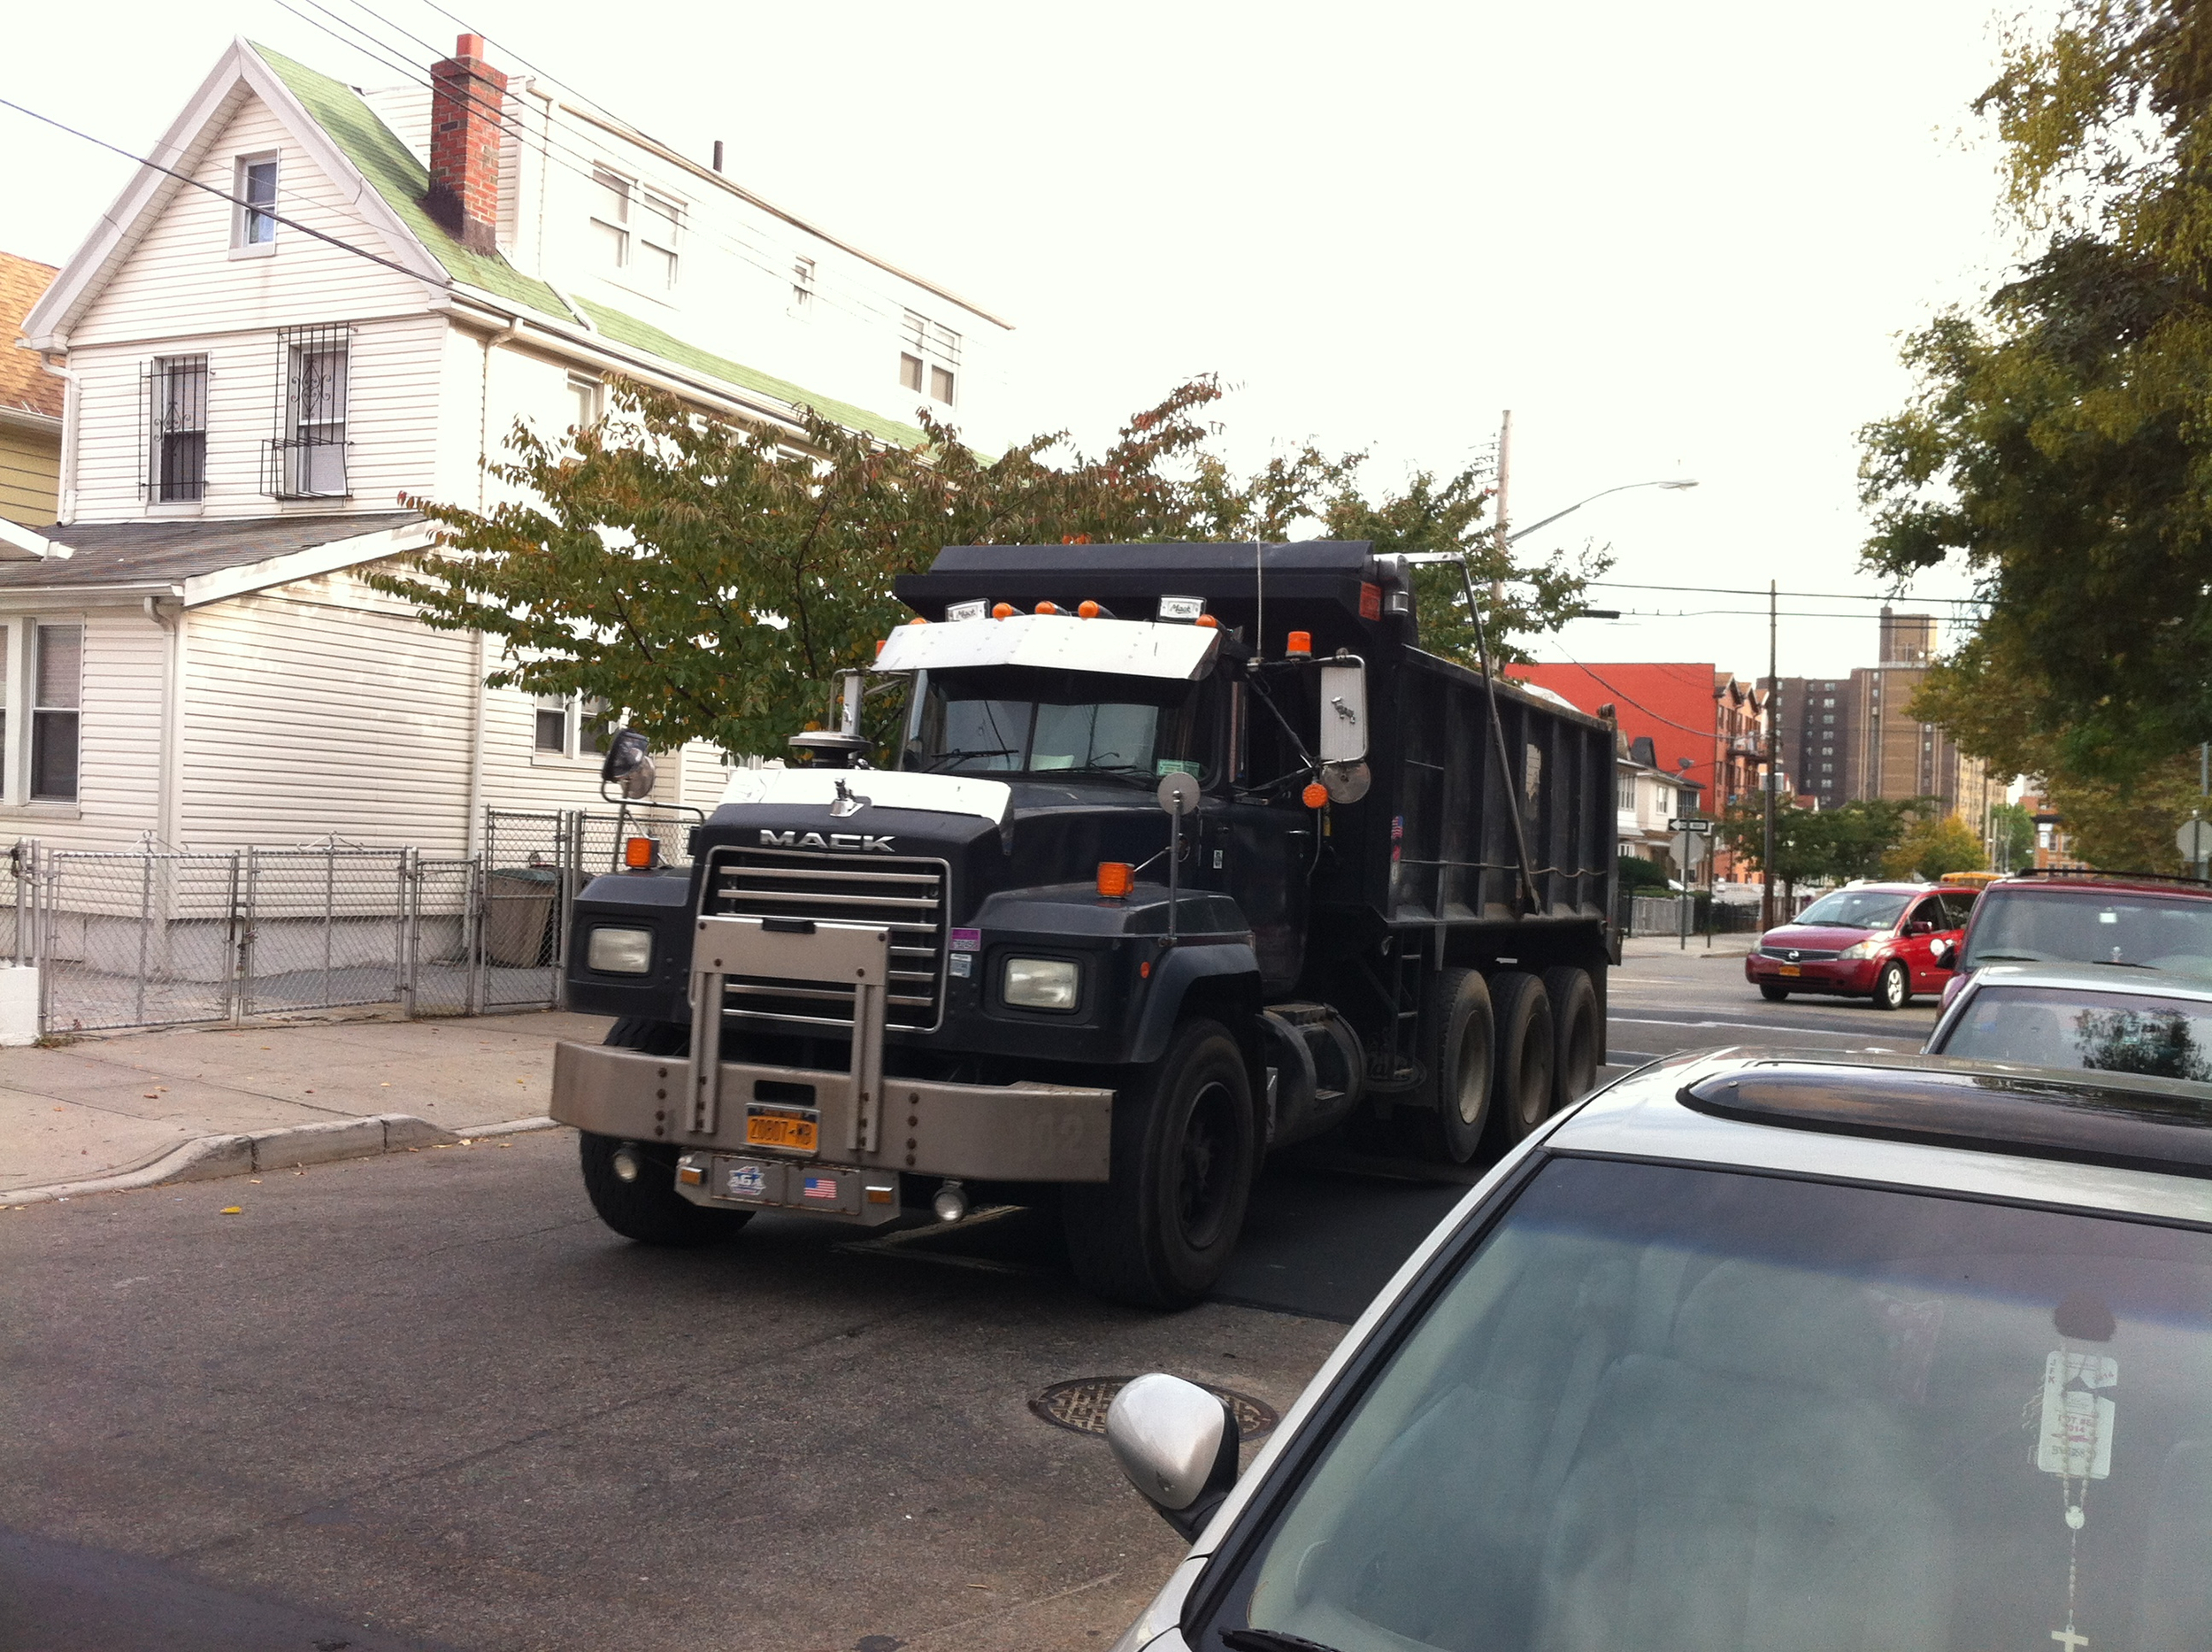 A dump truck was driven on 170th Street during Progress Queens' inspection tour of commercial traffic in Jamaica, Queens. Source : Louis Flores